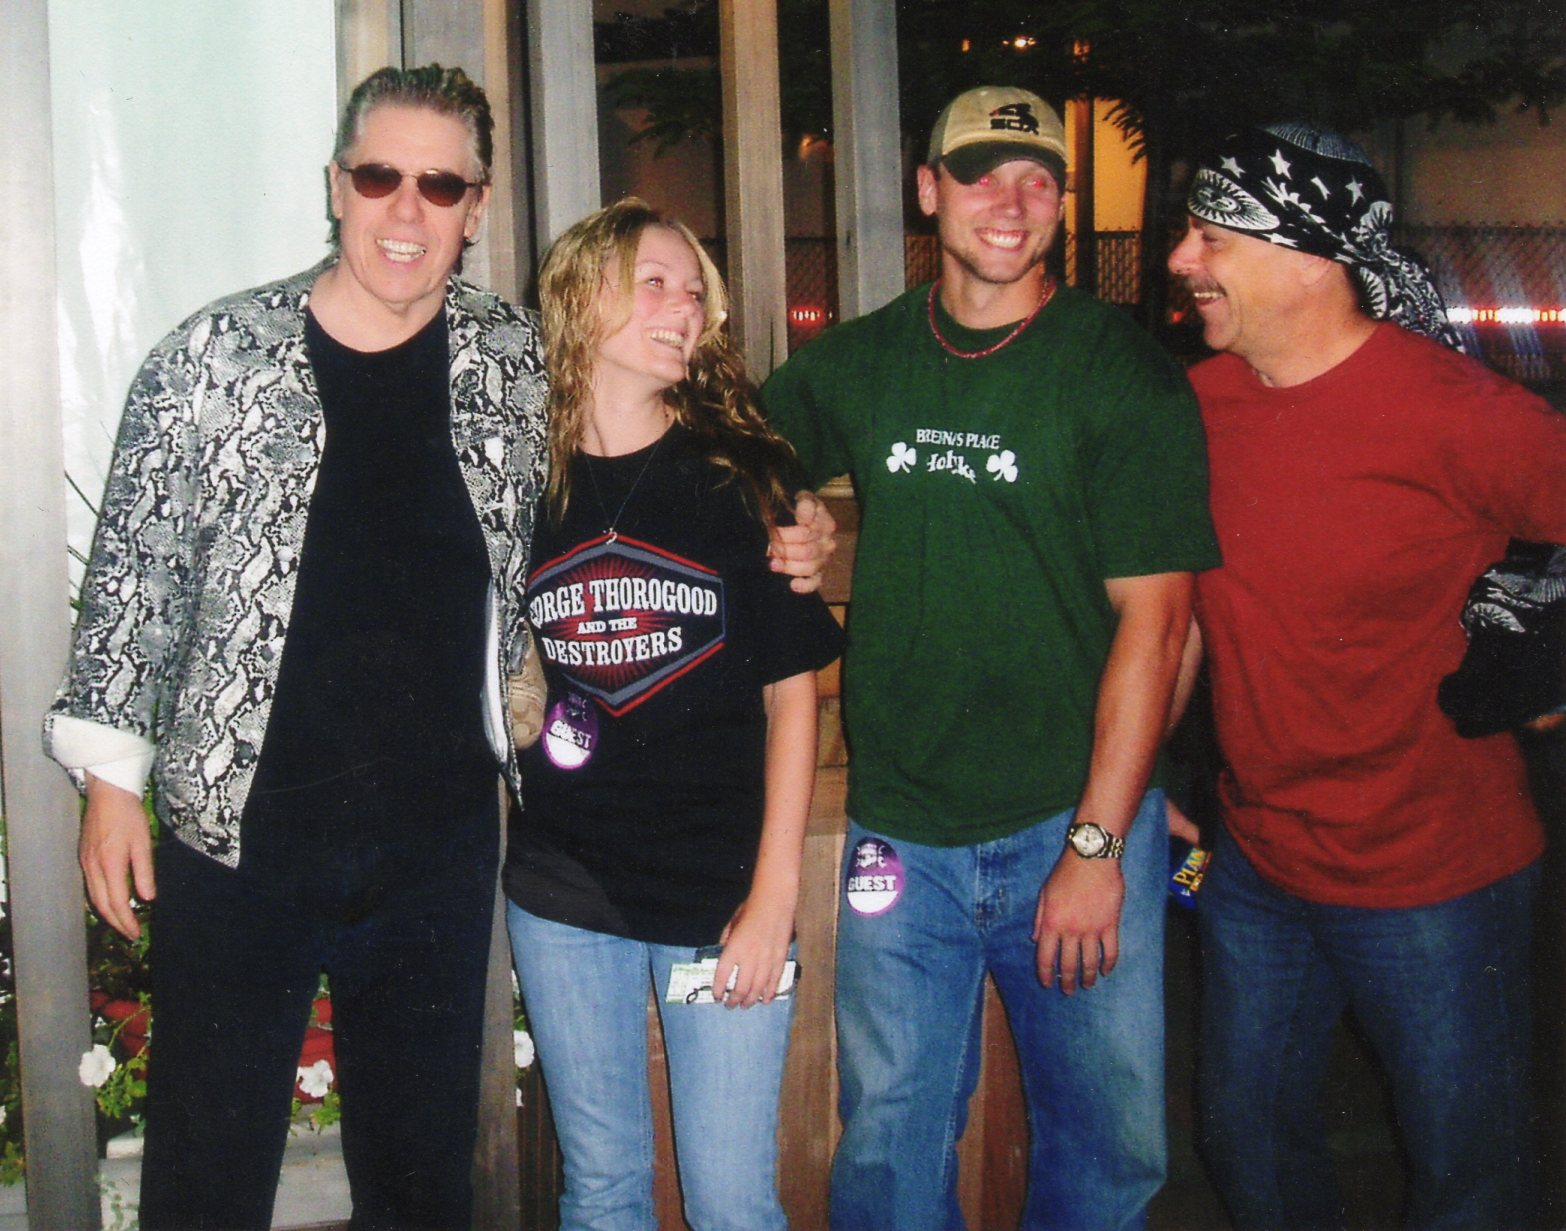 George Thorogood & Jeff Simon with Alyssa Cocorochio Dombrowski & Mike Dombrowski